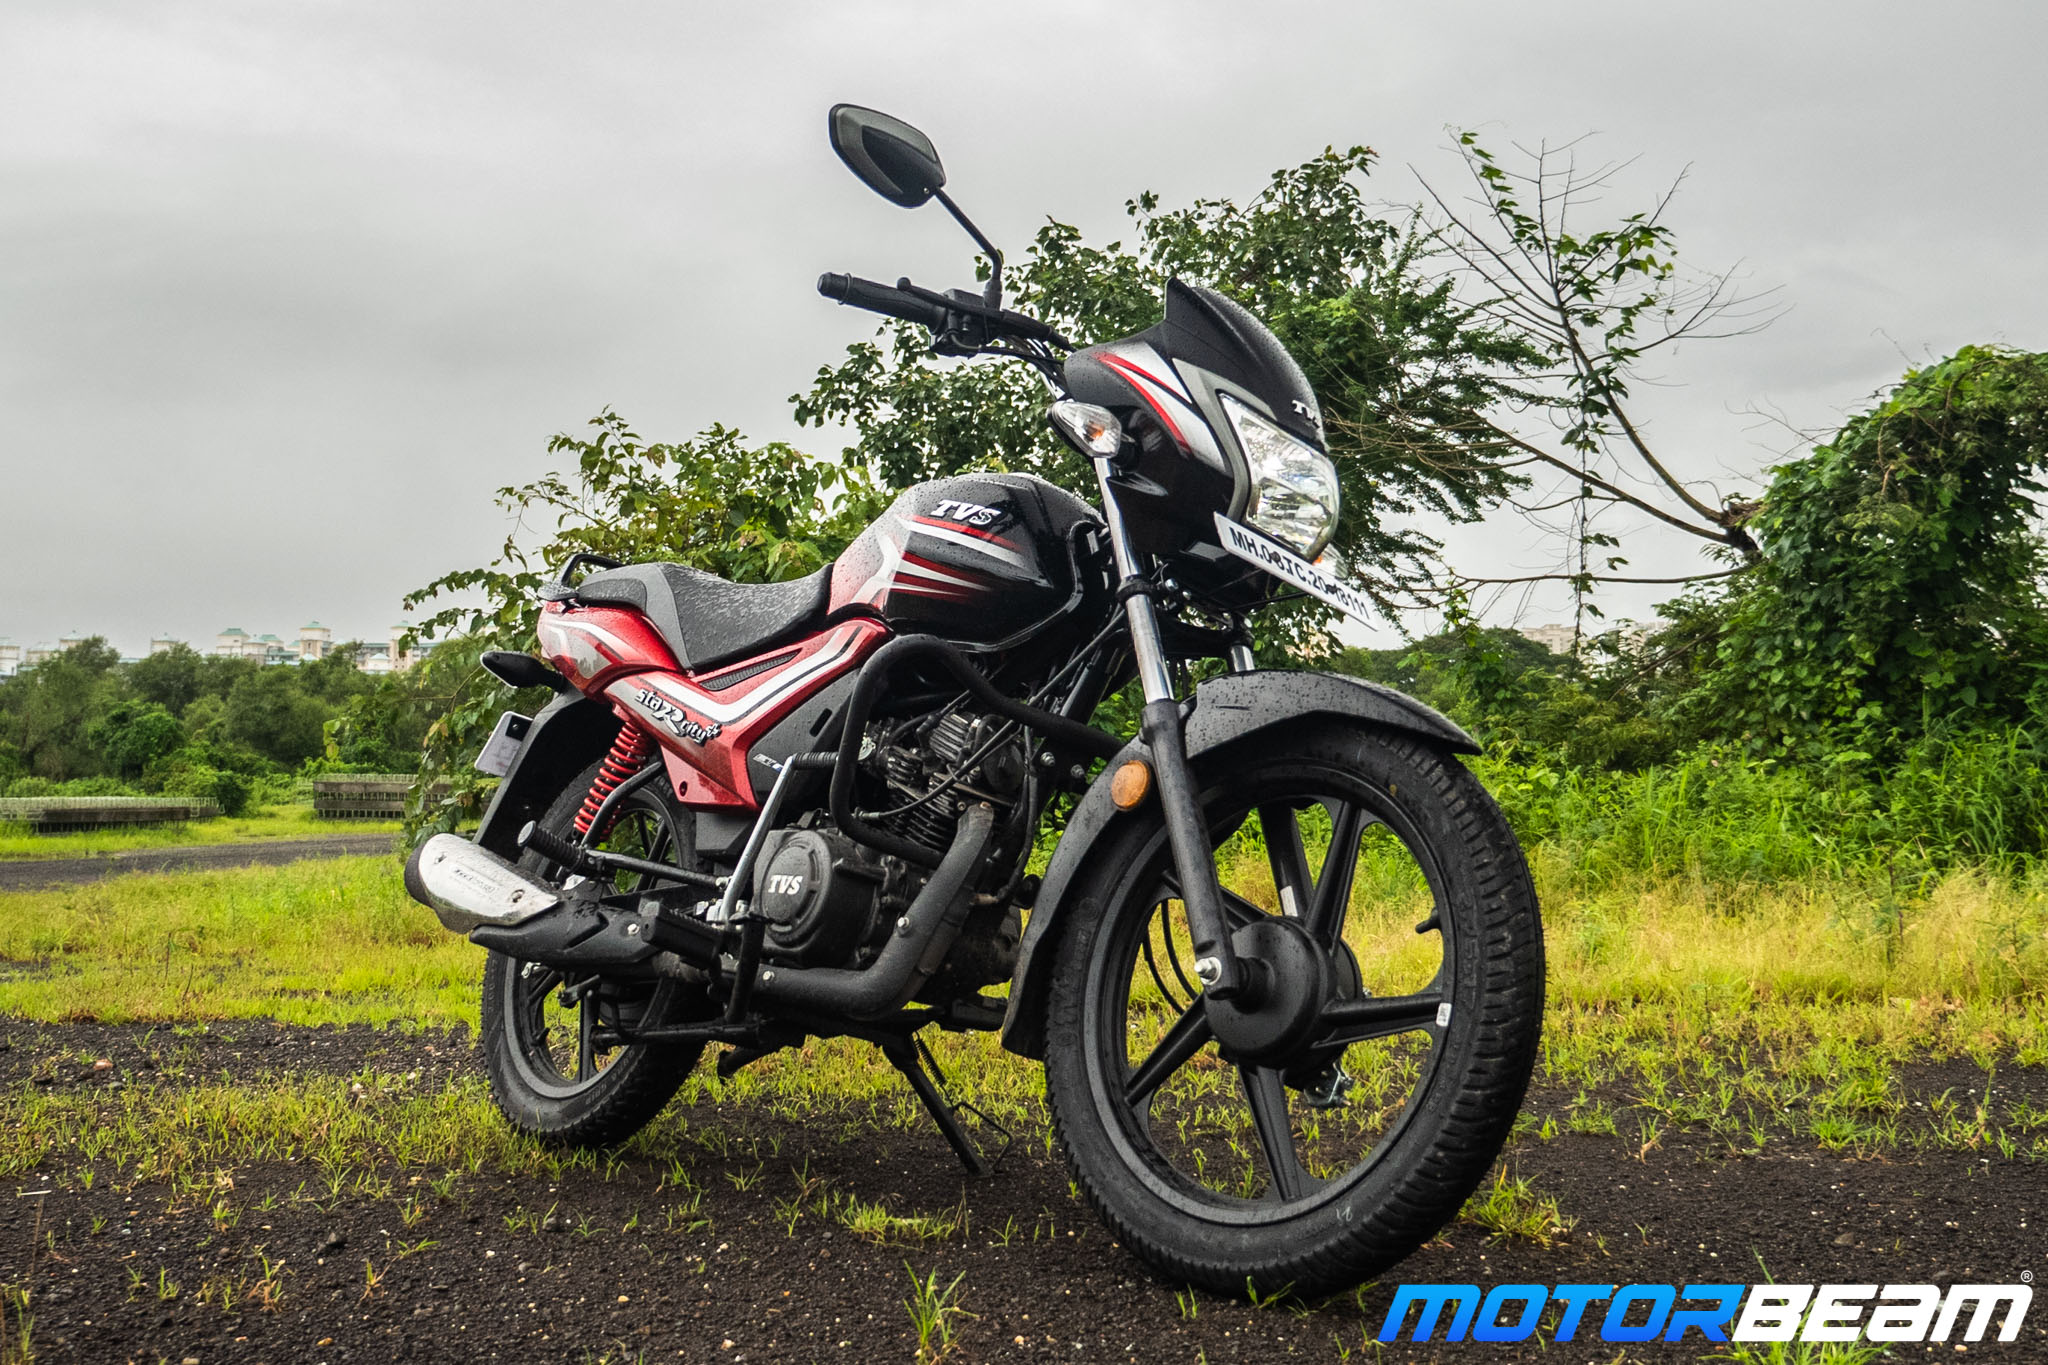 2020 TVS Star City+ Review 15